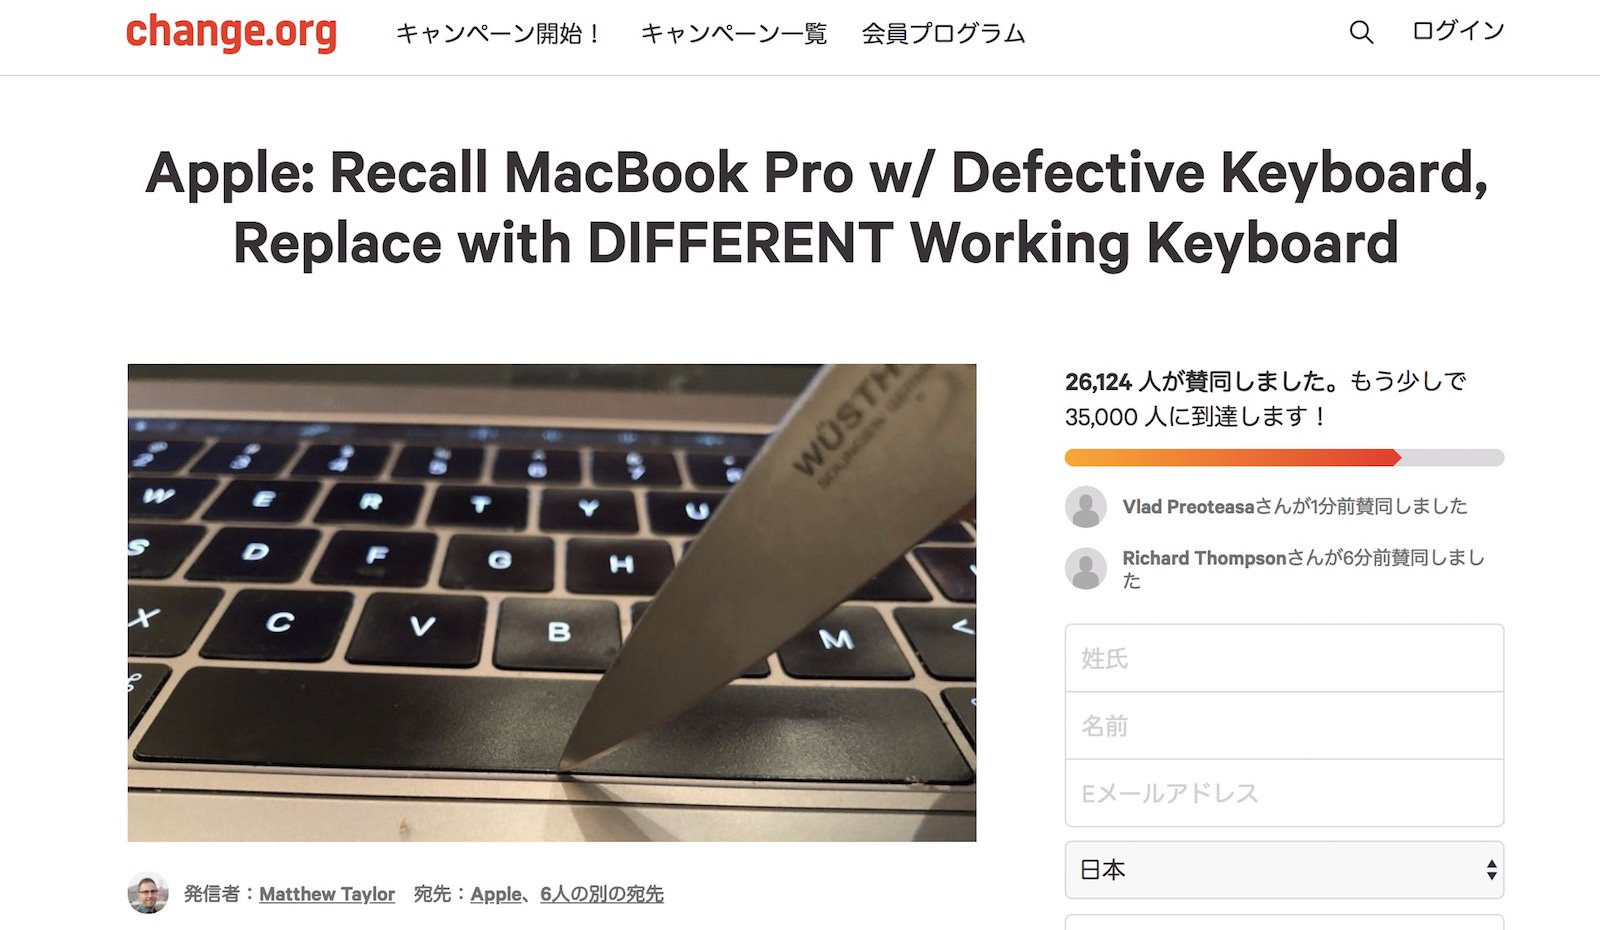 MacBook Pro Keyboard Petition ChangeOrg